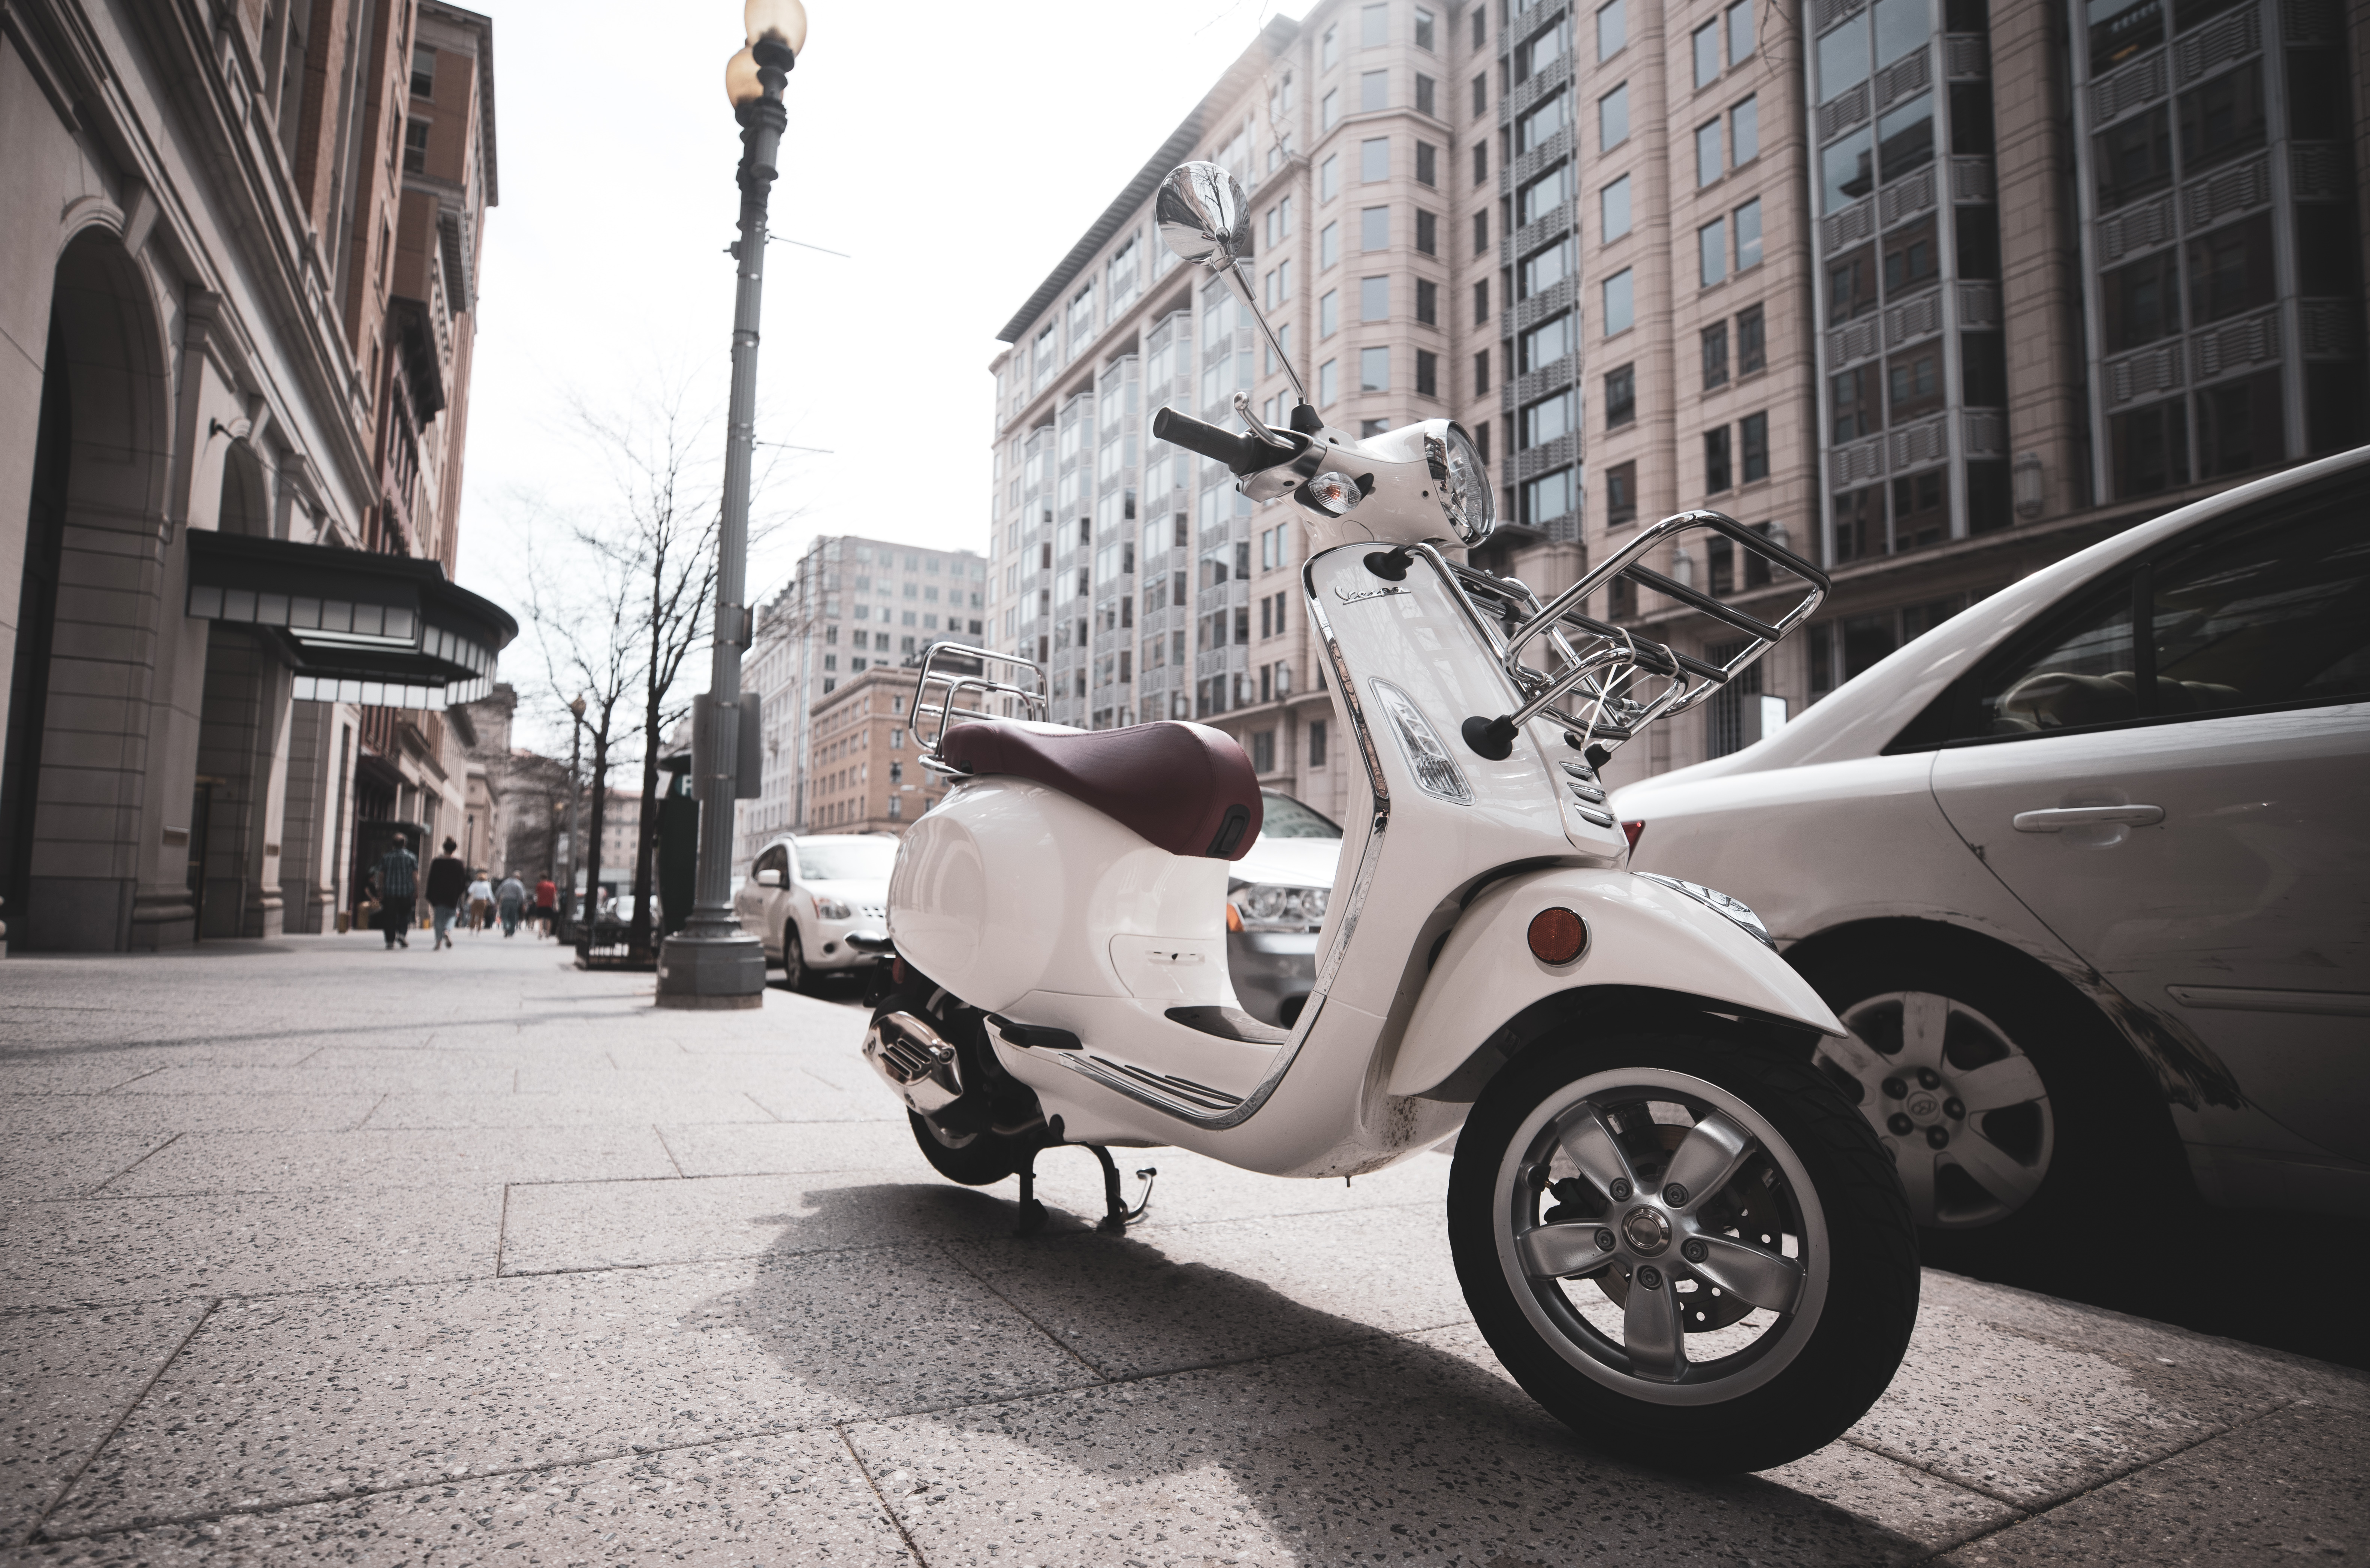 DC will permit shared mopeds on city streets under a new